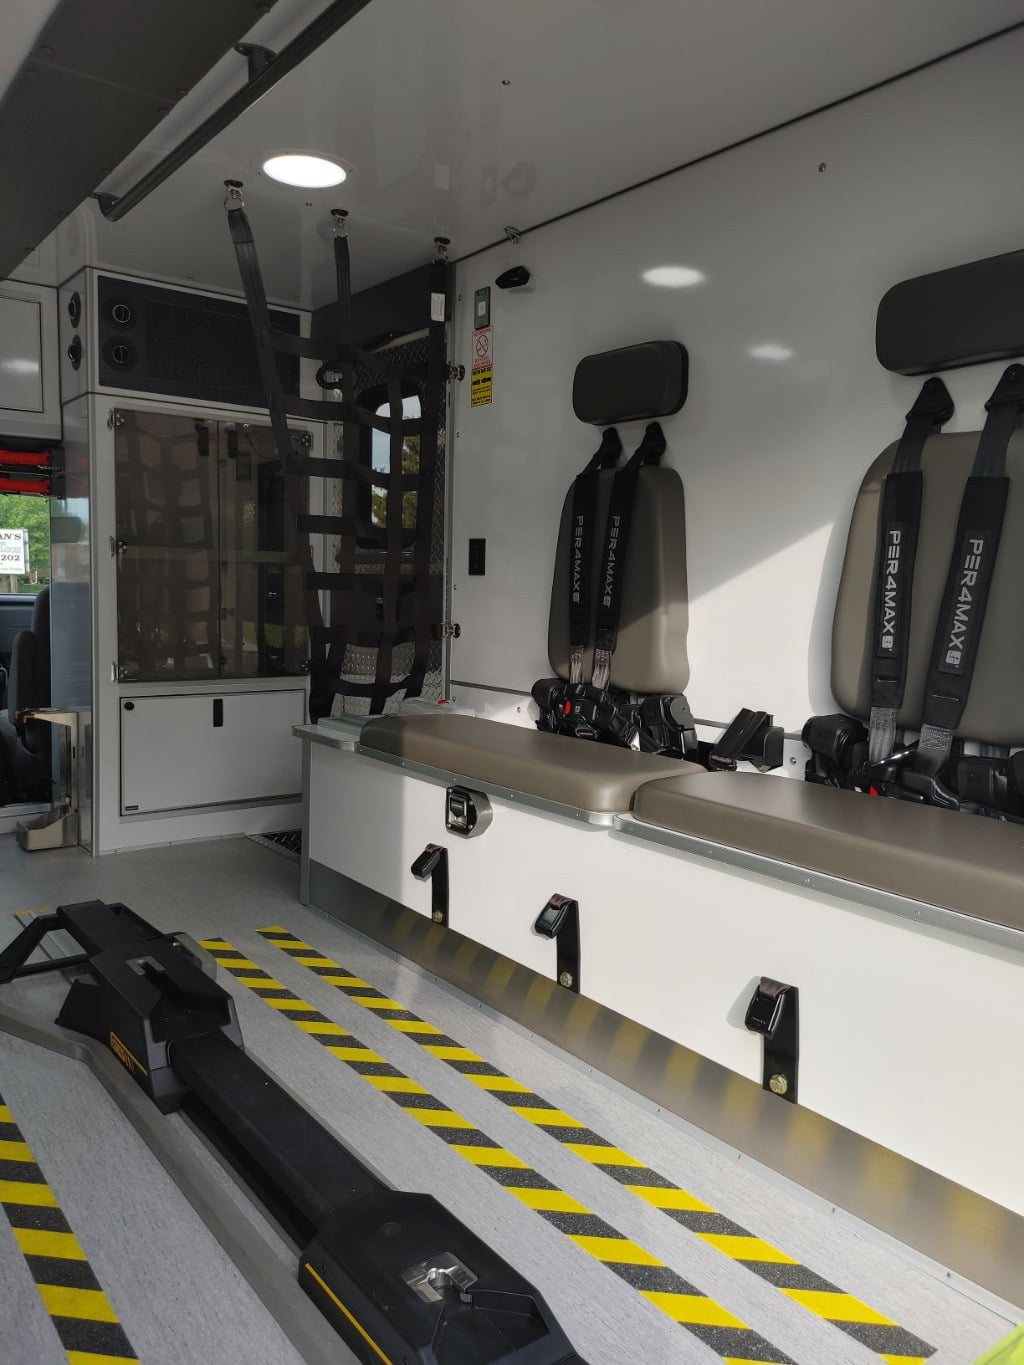 The squad bench in the AEV-built ambulance has two seating positions, each protected by a Per4Max four point harness system.